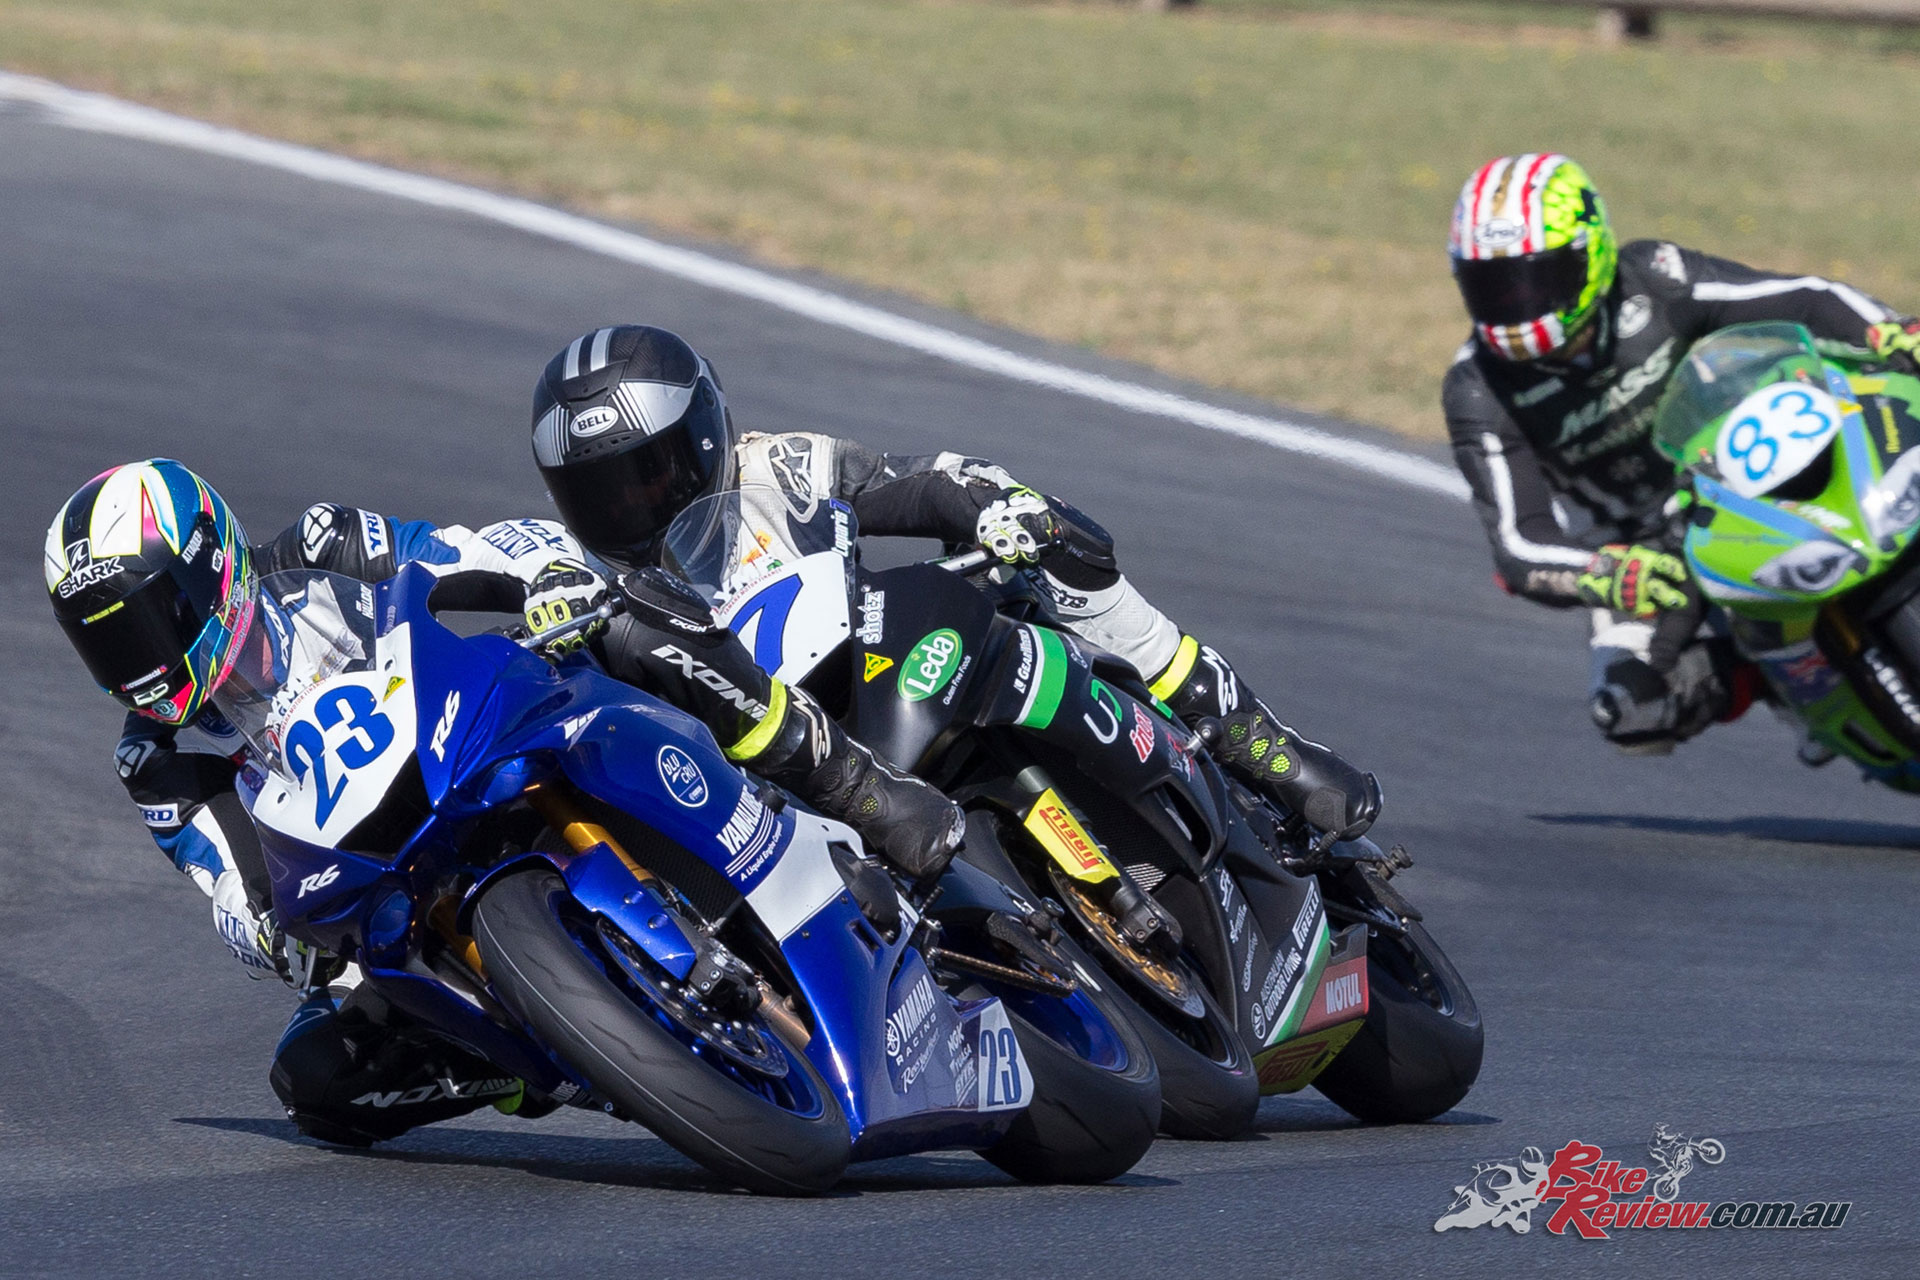 Cru Halliday proved dominant in the Supersport class - Image by TBG Sport